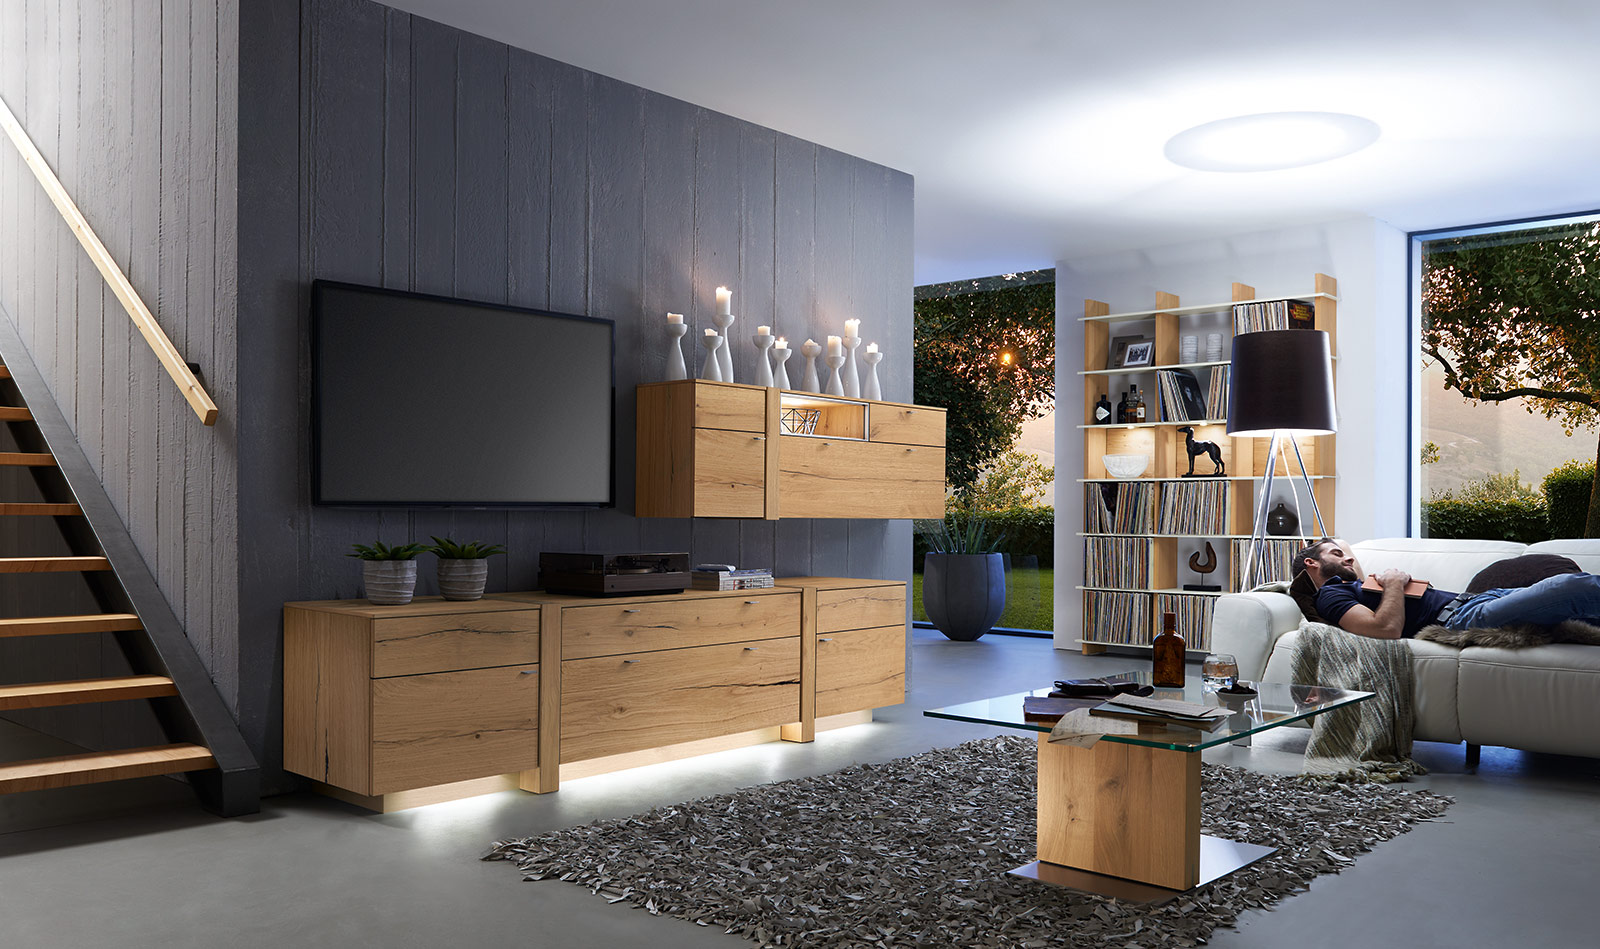 wohnzimmer programme albero venjakob m bel. Black Bedroom Furniture Sets. Home Design Ideas